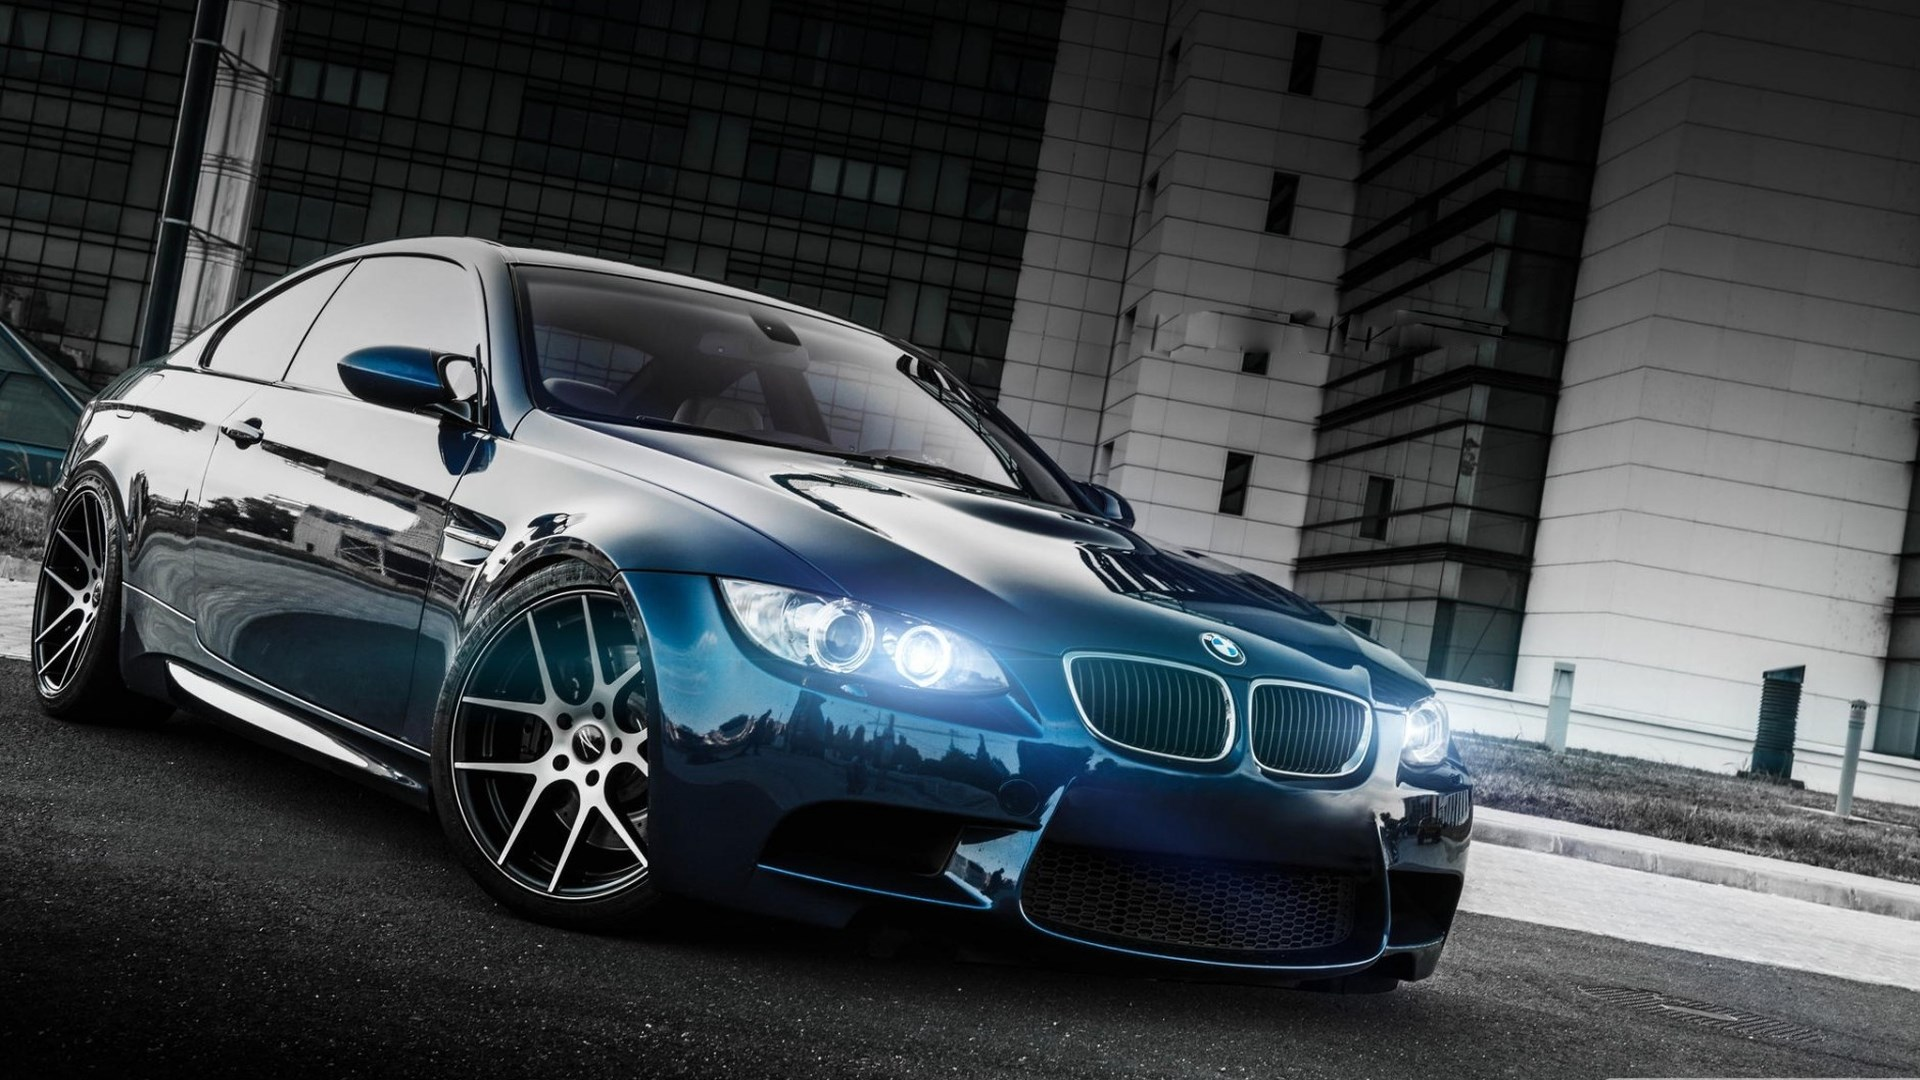 bmw-m-Full-HD-Pictures-1920x1080-wallpaper-wp3603587